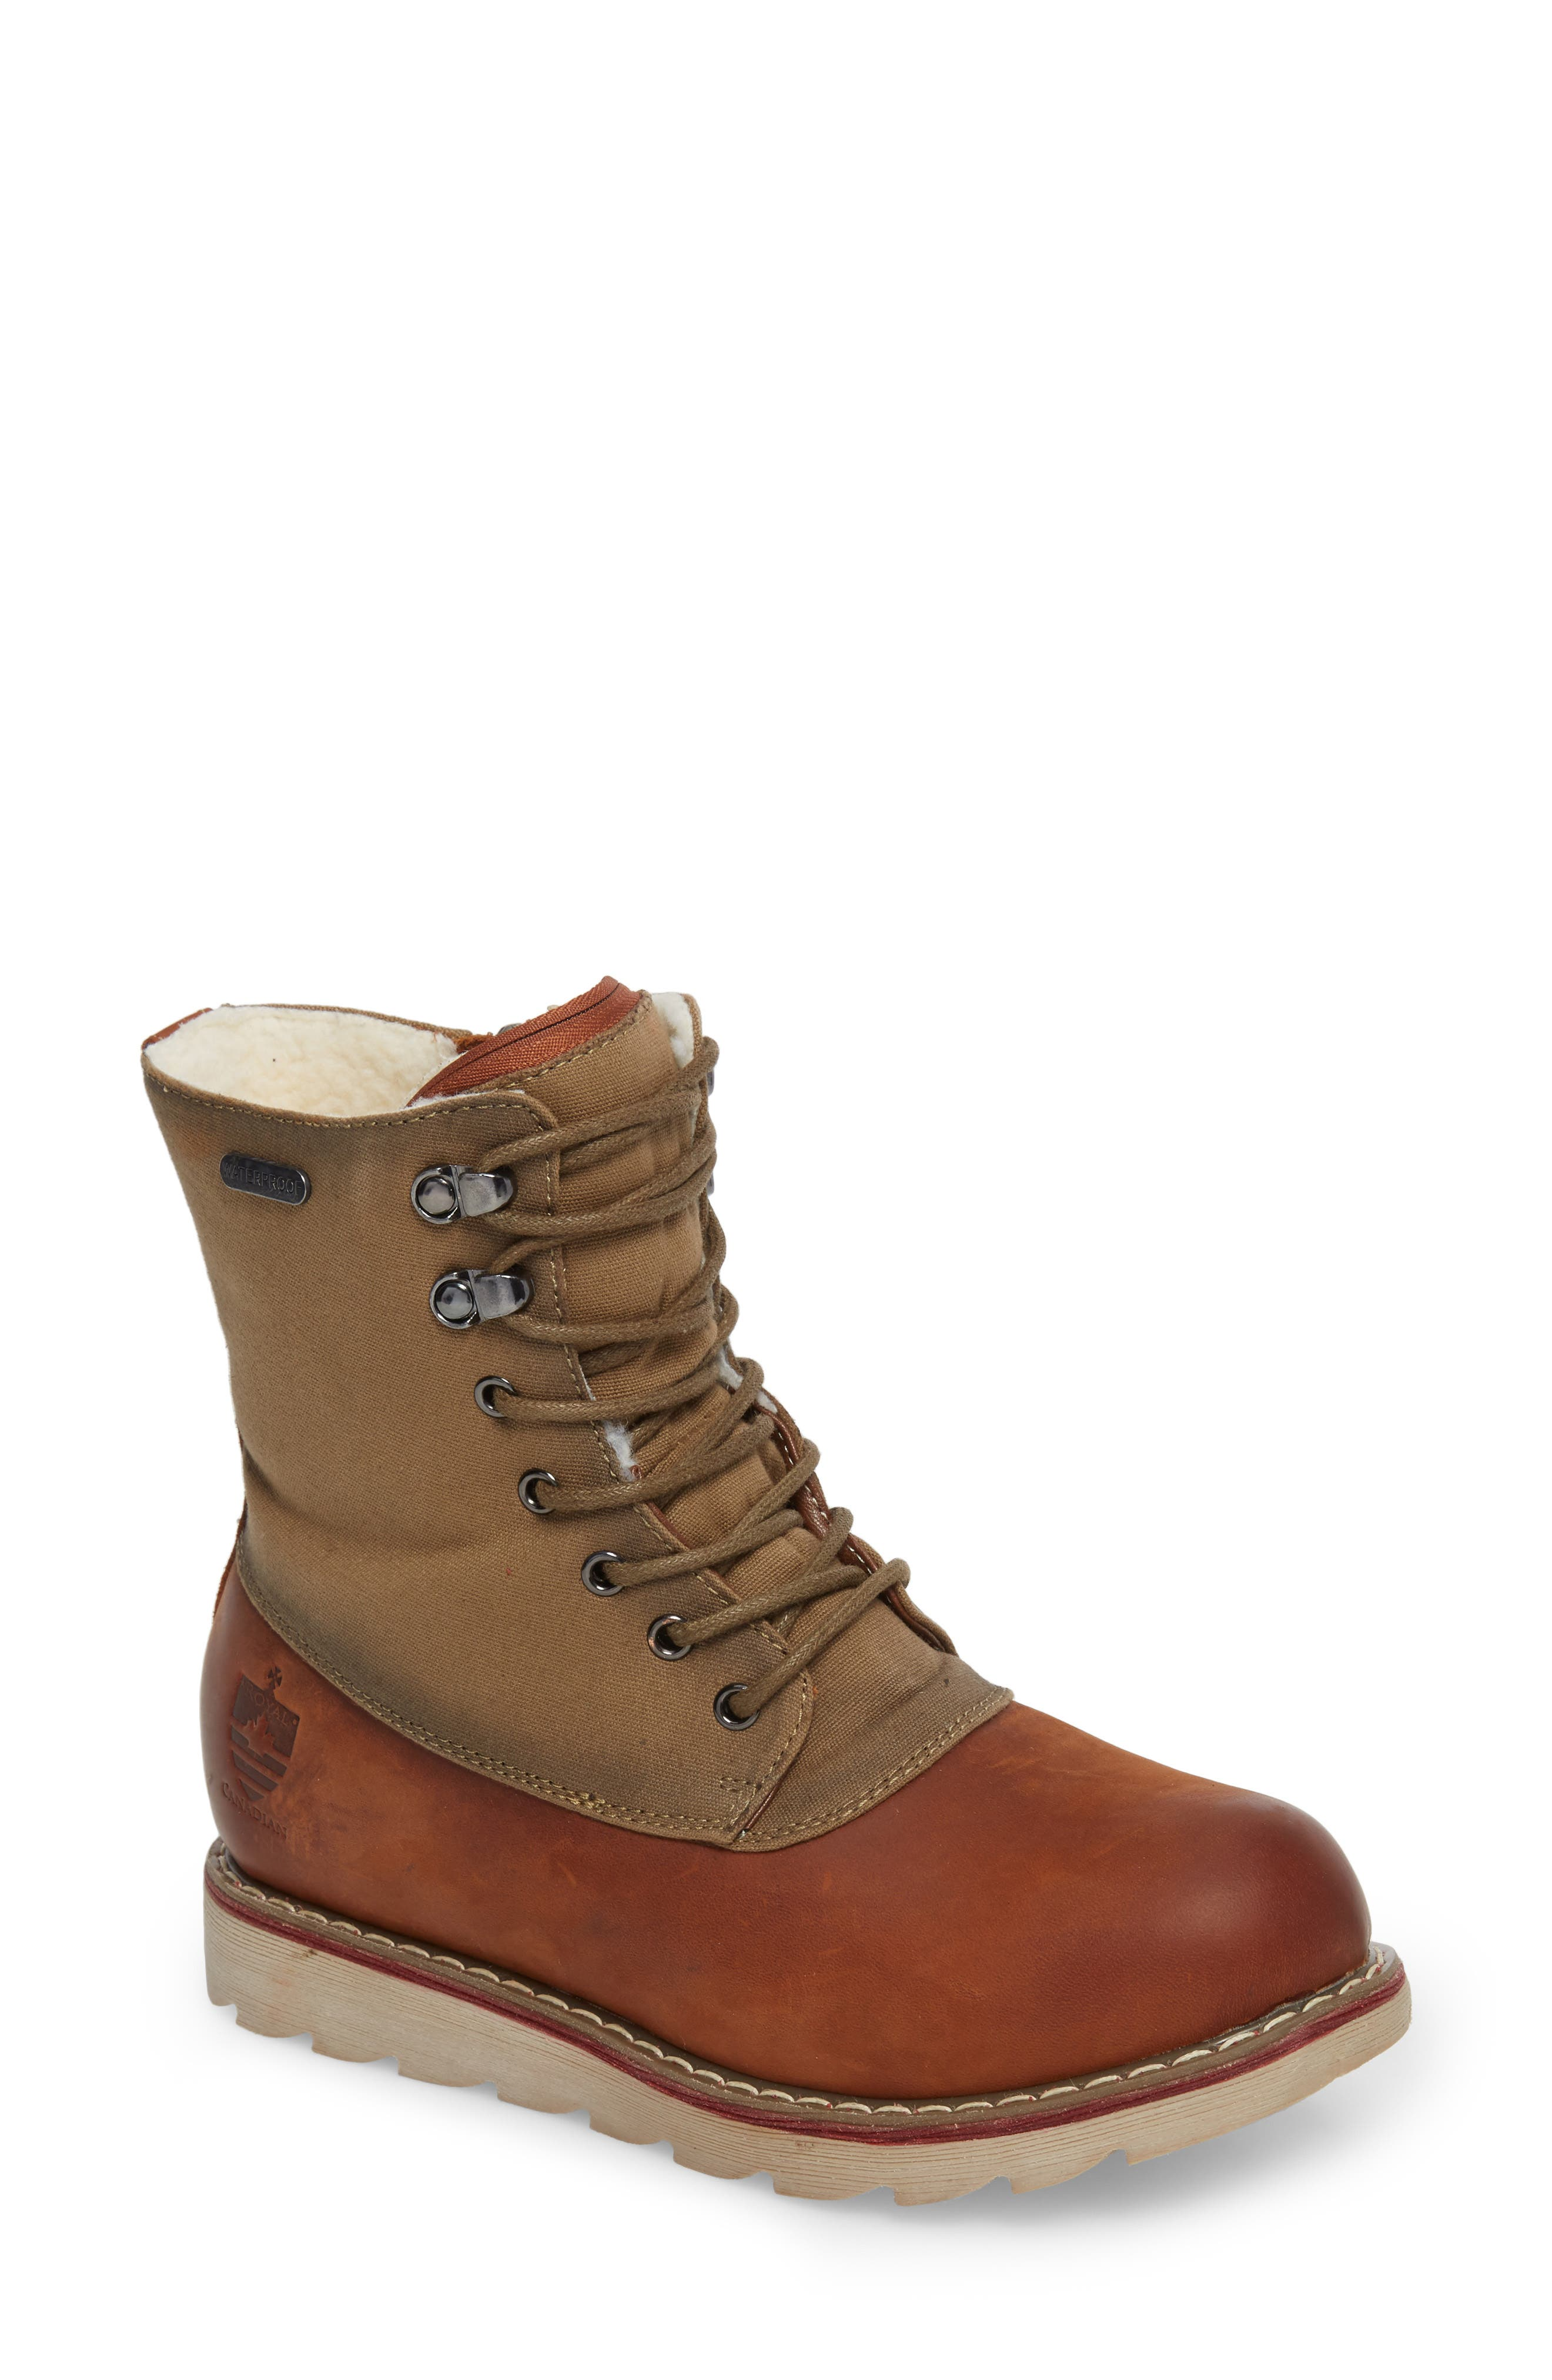 LaSalle Waterproof Insulated Winter Boot,                             Main thumbnail 1, color,                             Cognac Leather